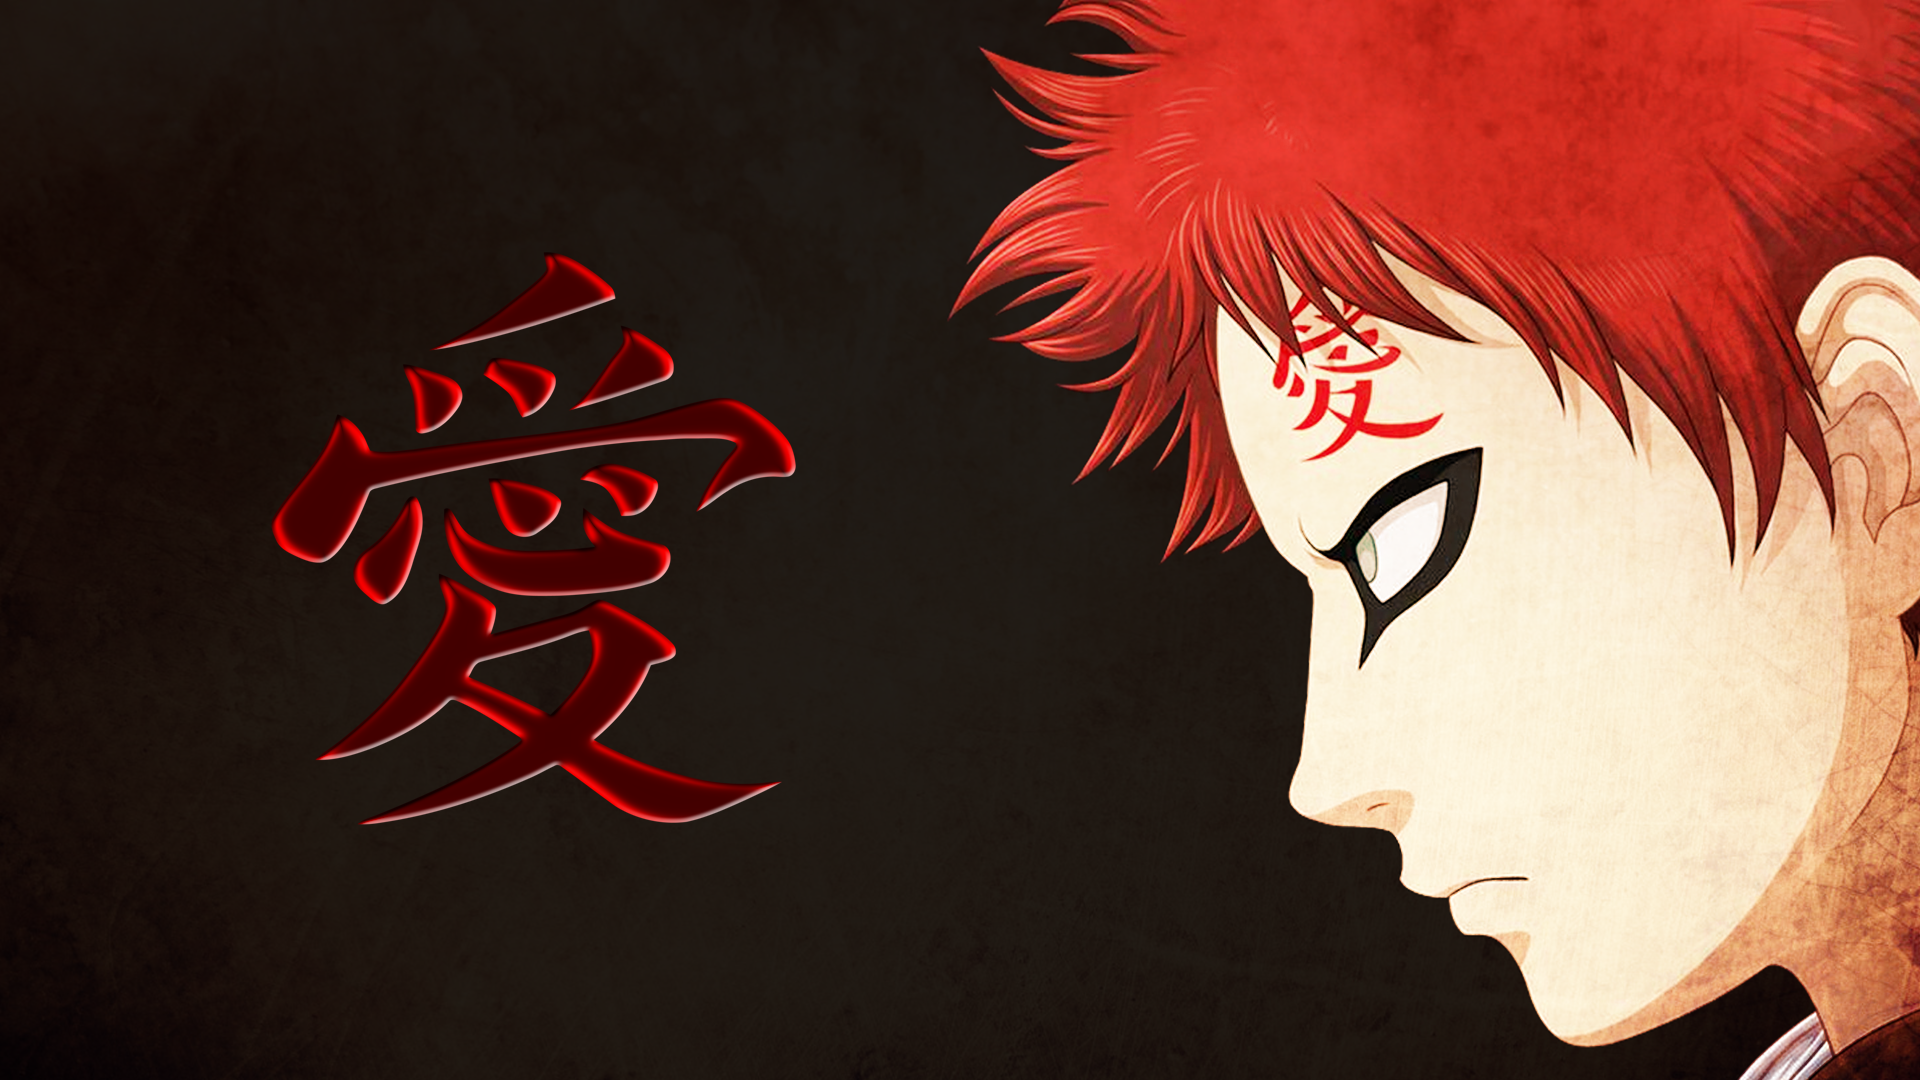 naruto and gaara wallpaper - photo #29